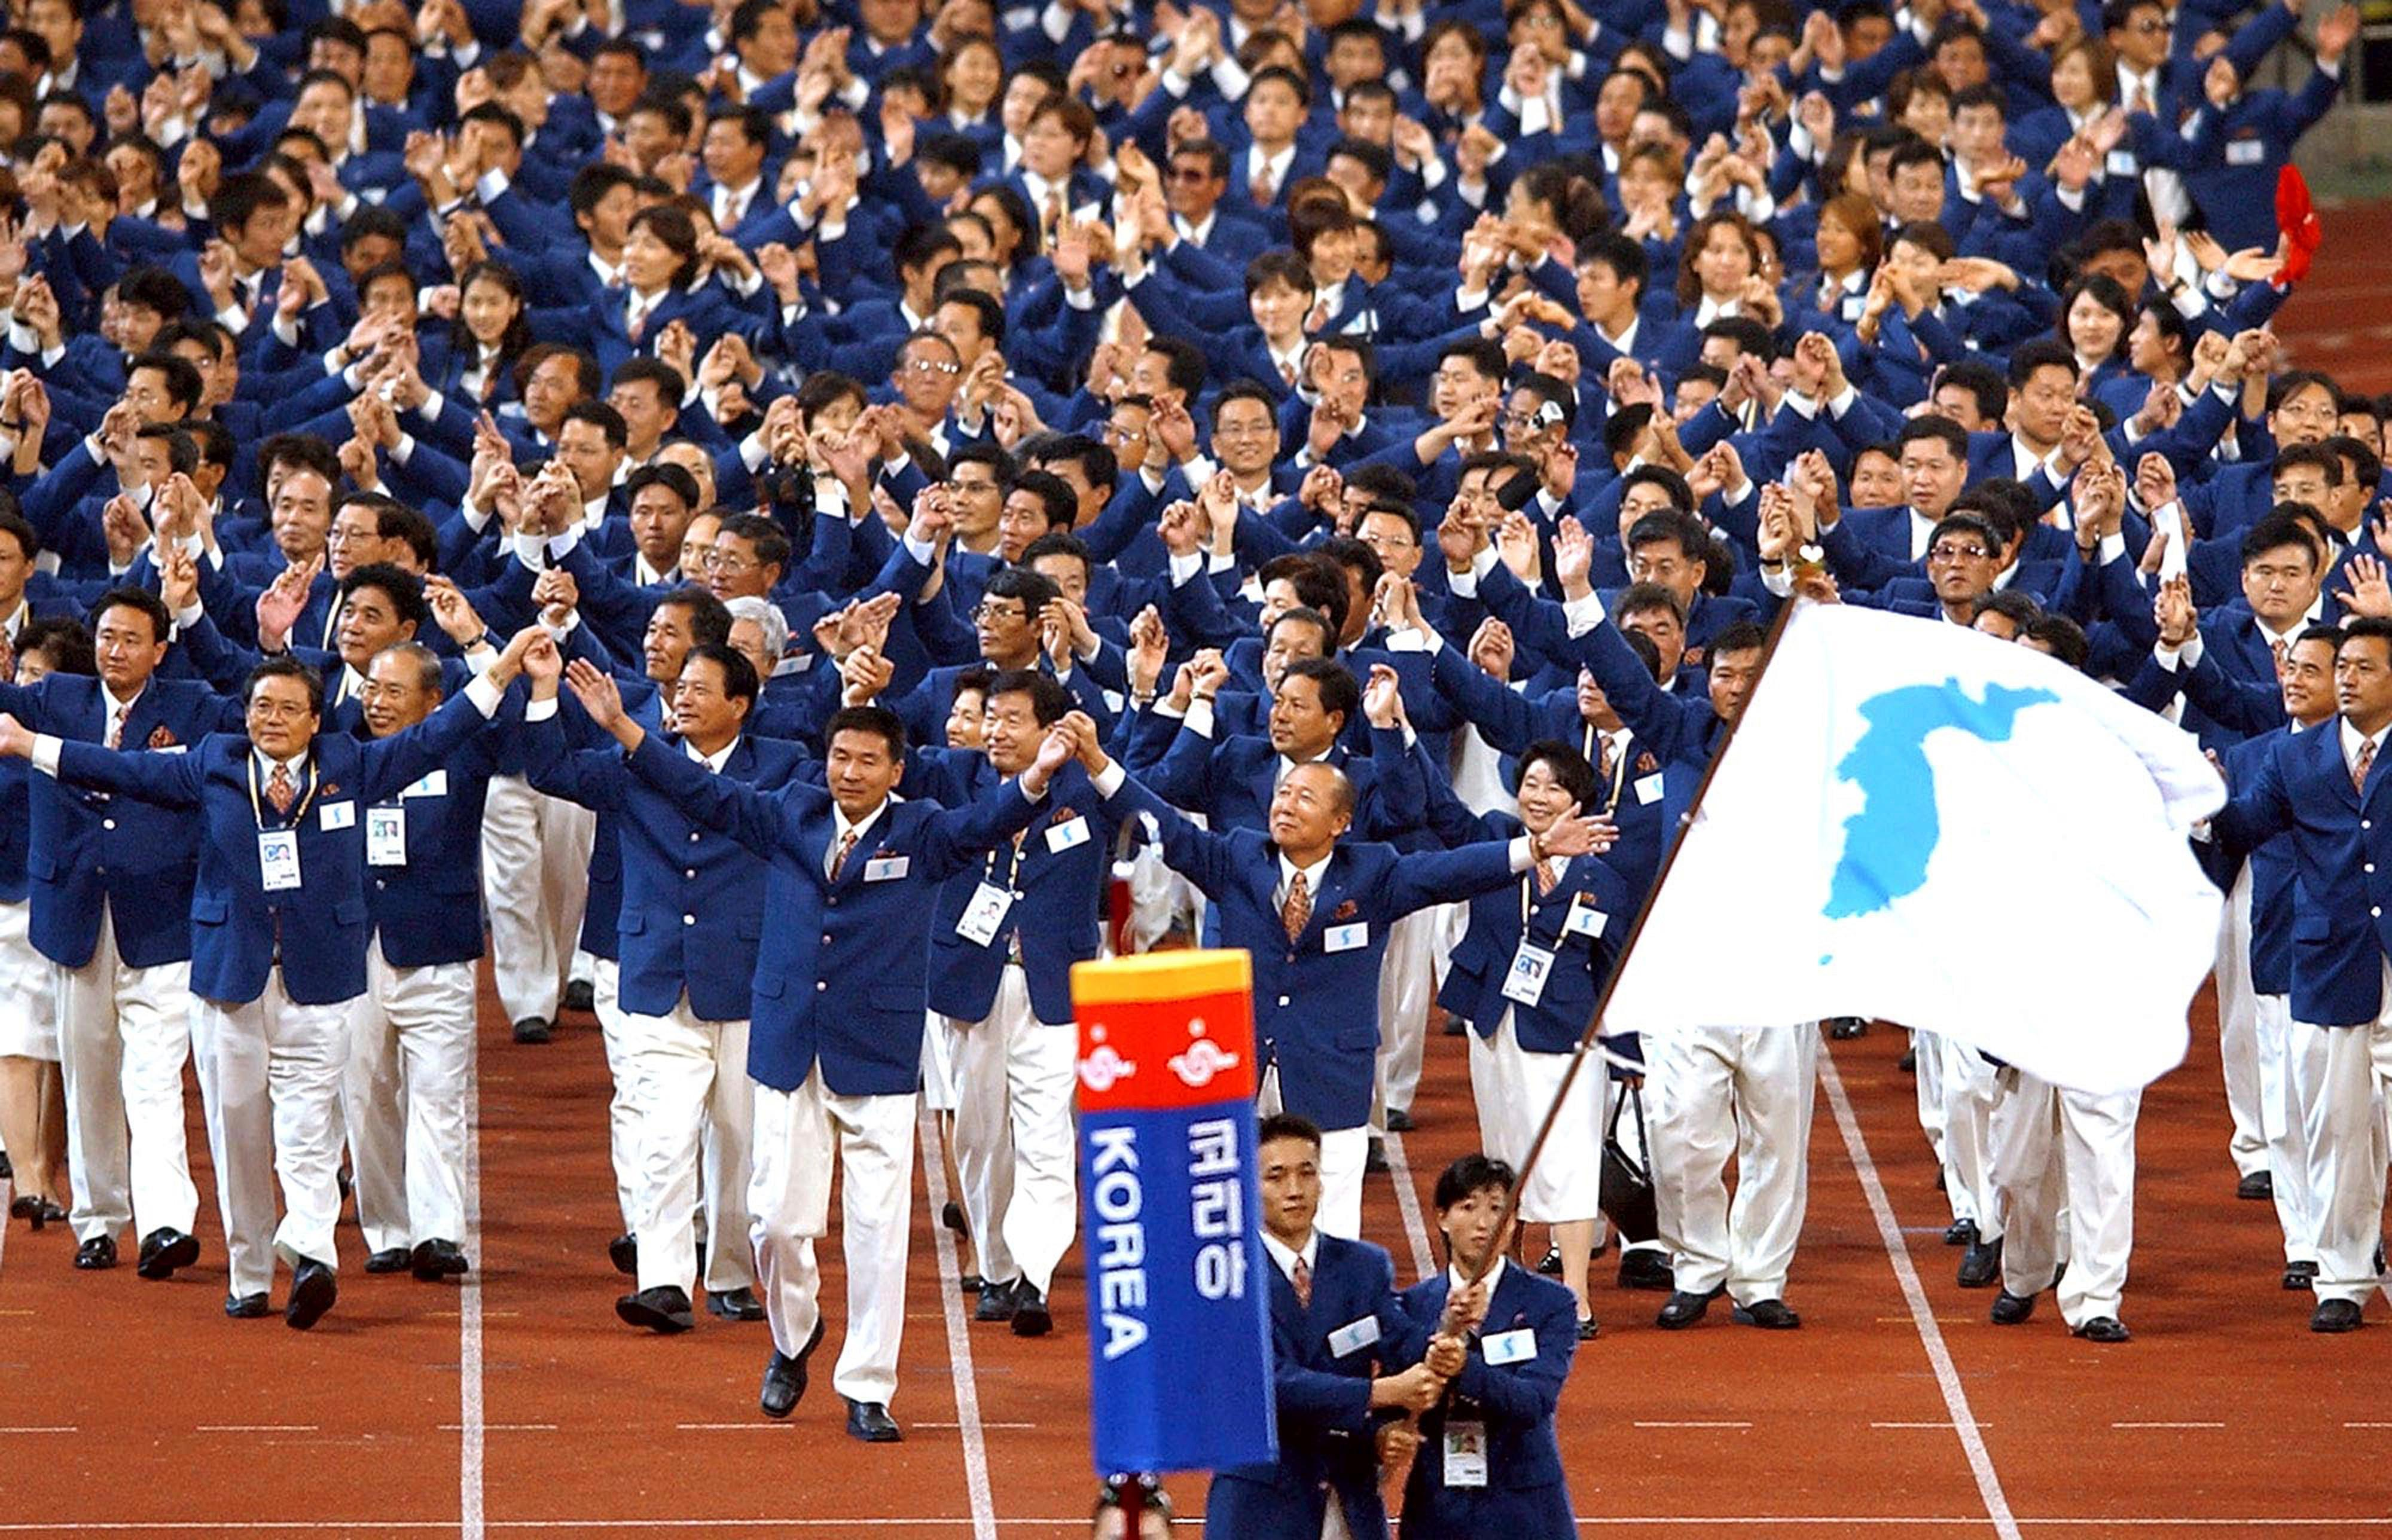 "FILE - In this Sept. 29, 2002 file photo, athletes from North and South Korea march together, led by a unification flag, during an opening ceremony for the 14th Asian Games in Busan, South Korea. During South and North Korea's talks at the border in about a week Wednesday, Jan. 17, 2018, senior officials from the two Koreas reached a package of deals including fielding a joint women's hockey team and conducting a joint march under a ""unification flag"" depicting their peninsula during the opening ceremony, according to Seoul's Unification Ministry.(Yonhap via AP, File)"